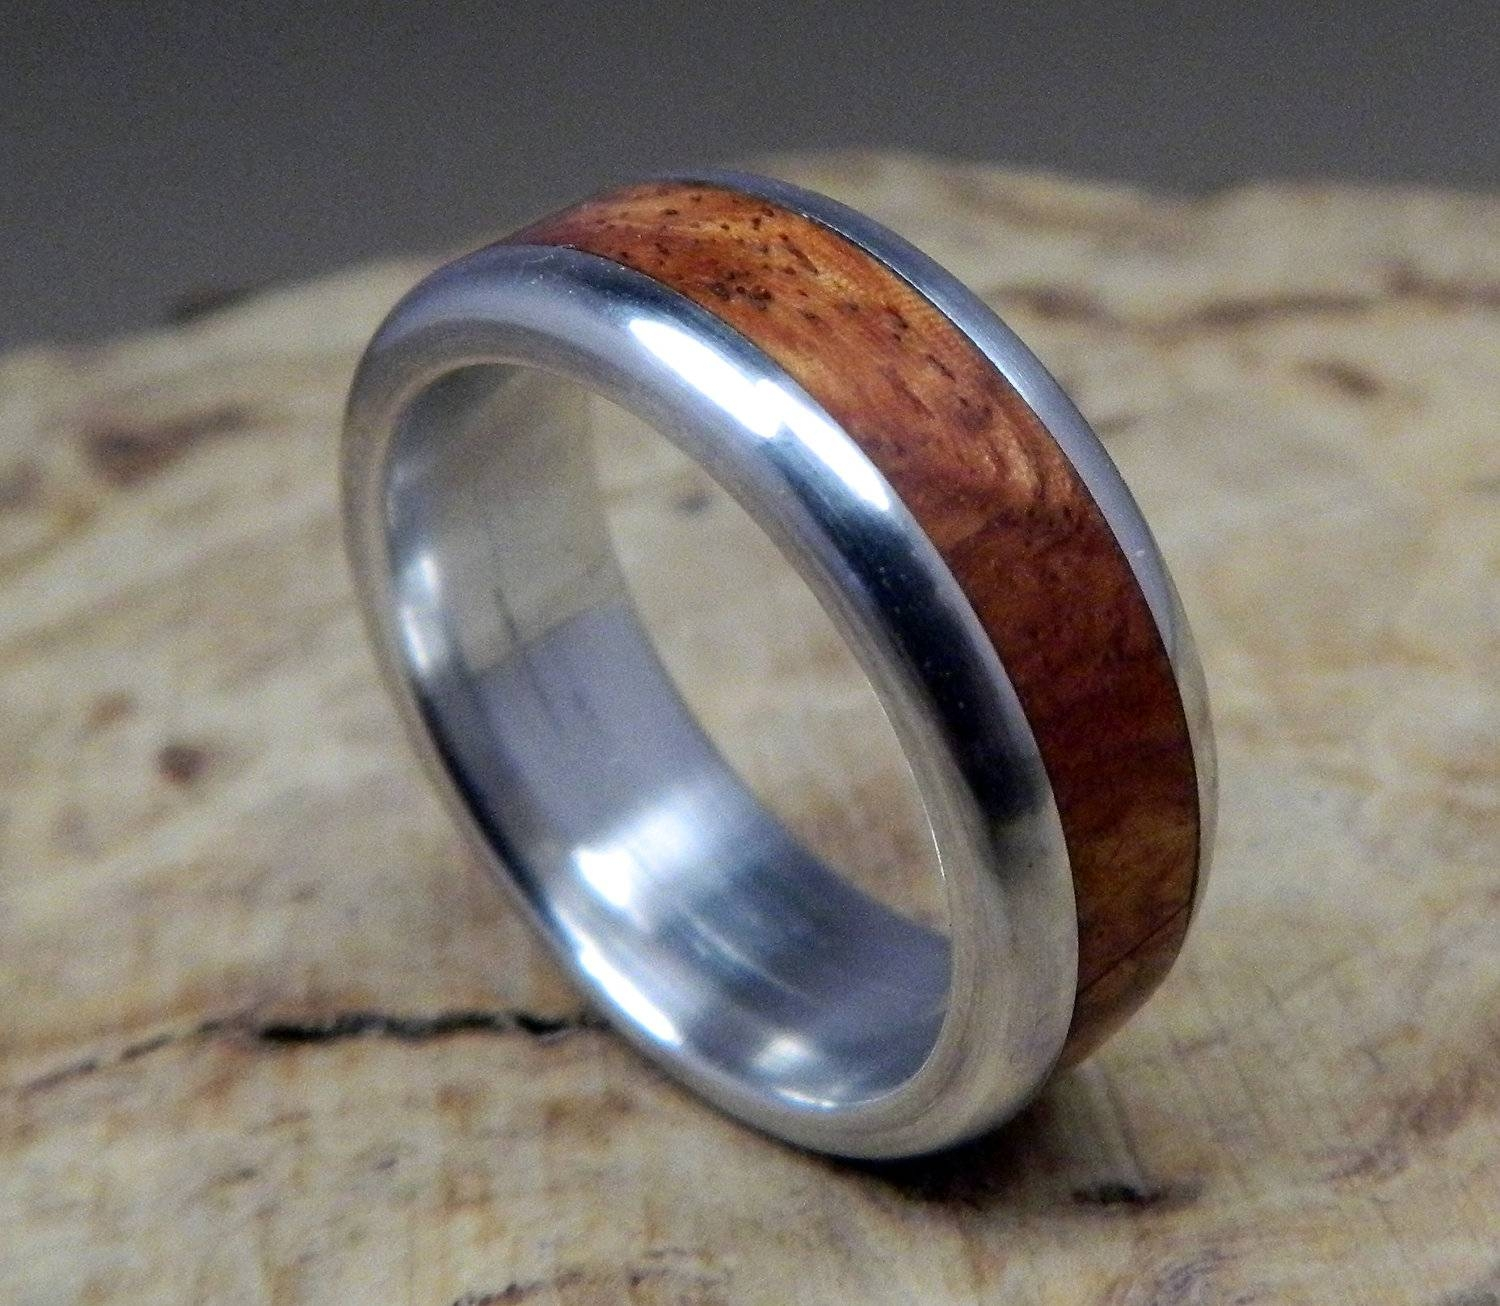 Wood Ring, Aluminum Ring, Wedding Ring, Wooden Ring, Wood Inlay For Men's Wedding Bands Wood Inlay (View 14 of 15)